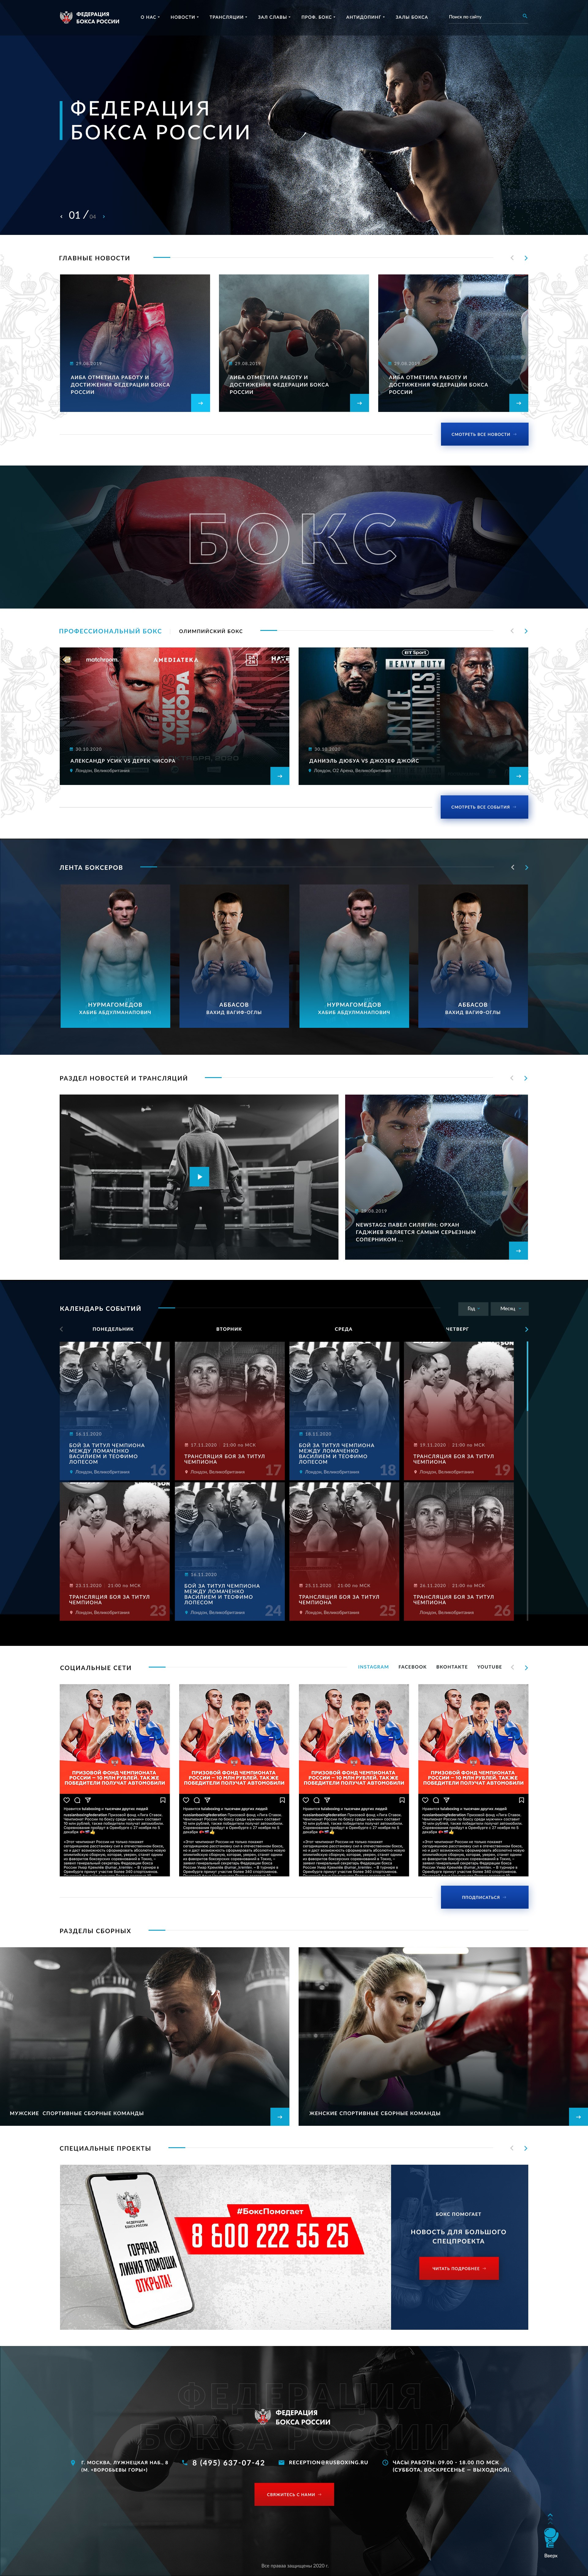 Boxing_01_Home_Final_full